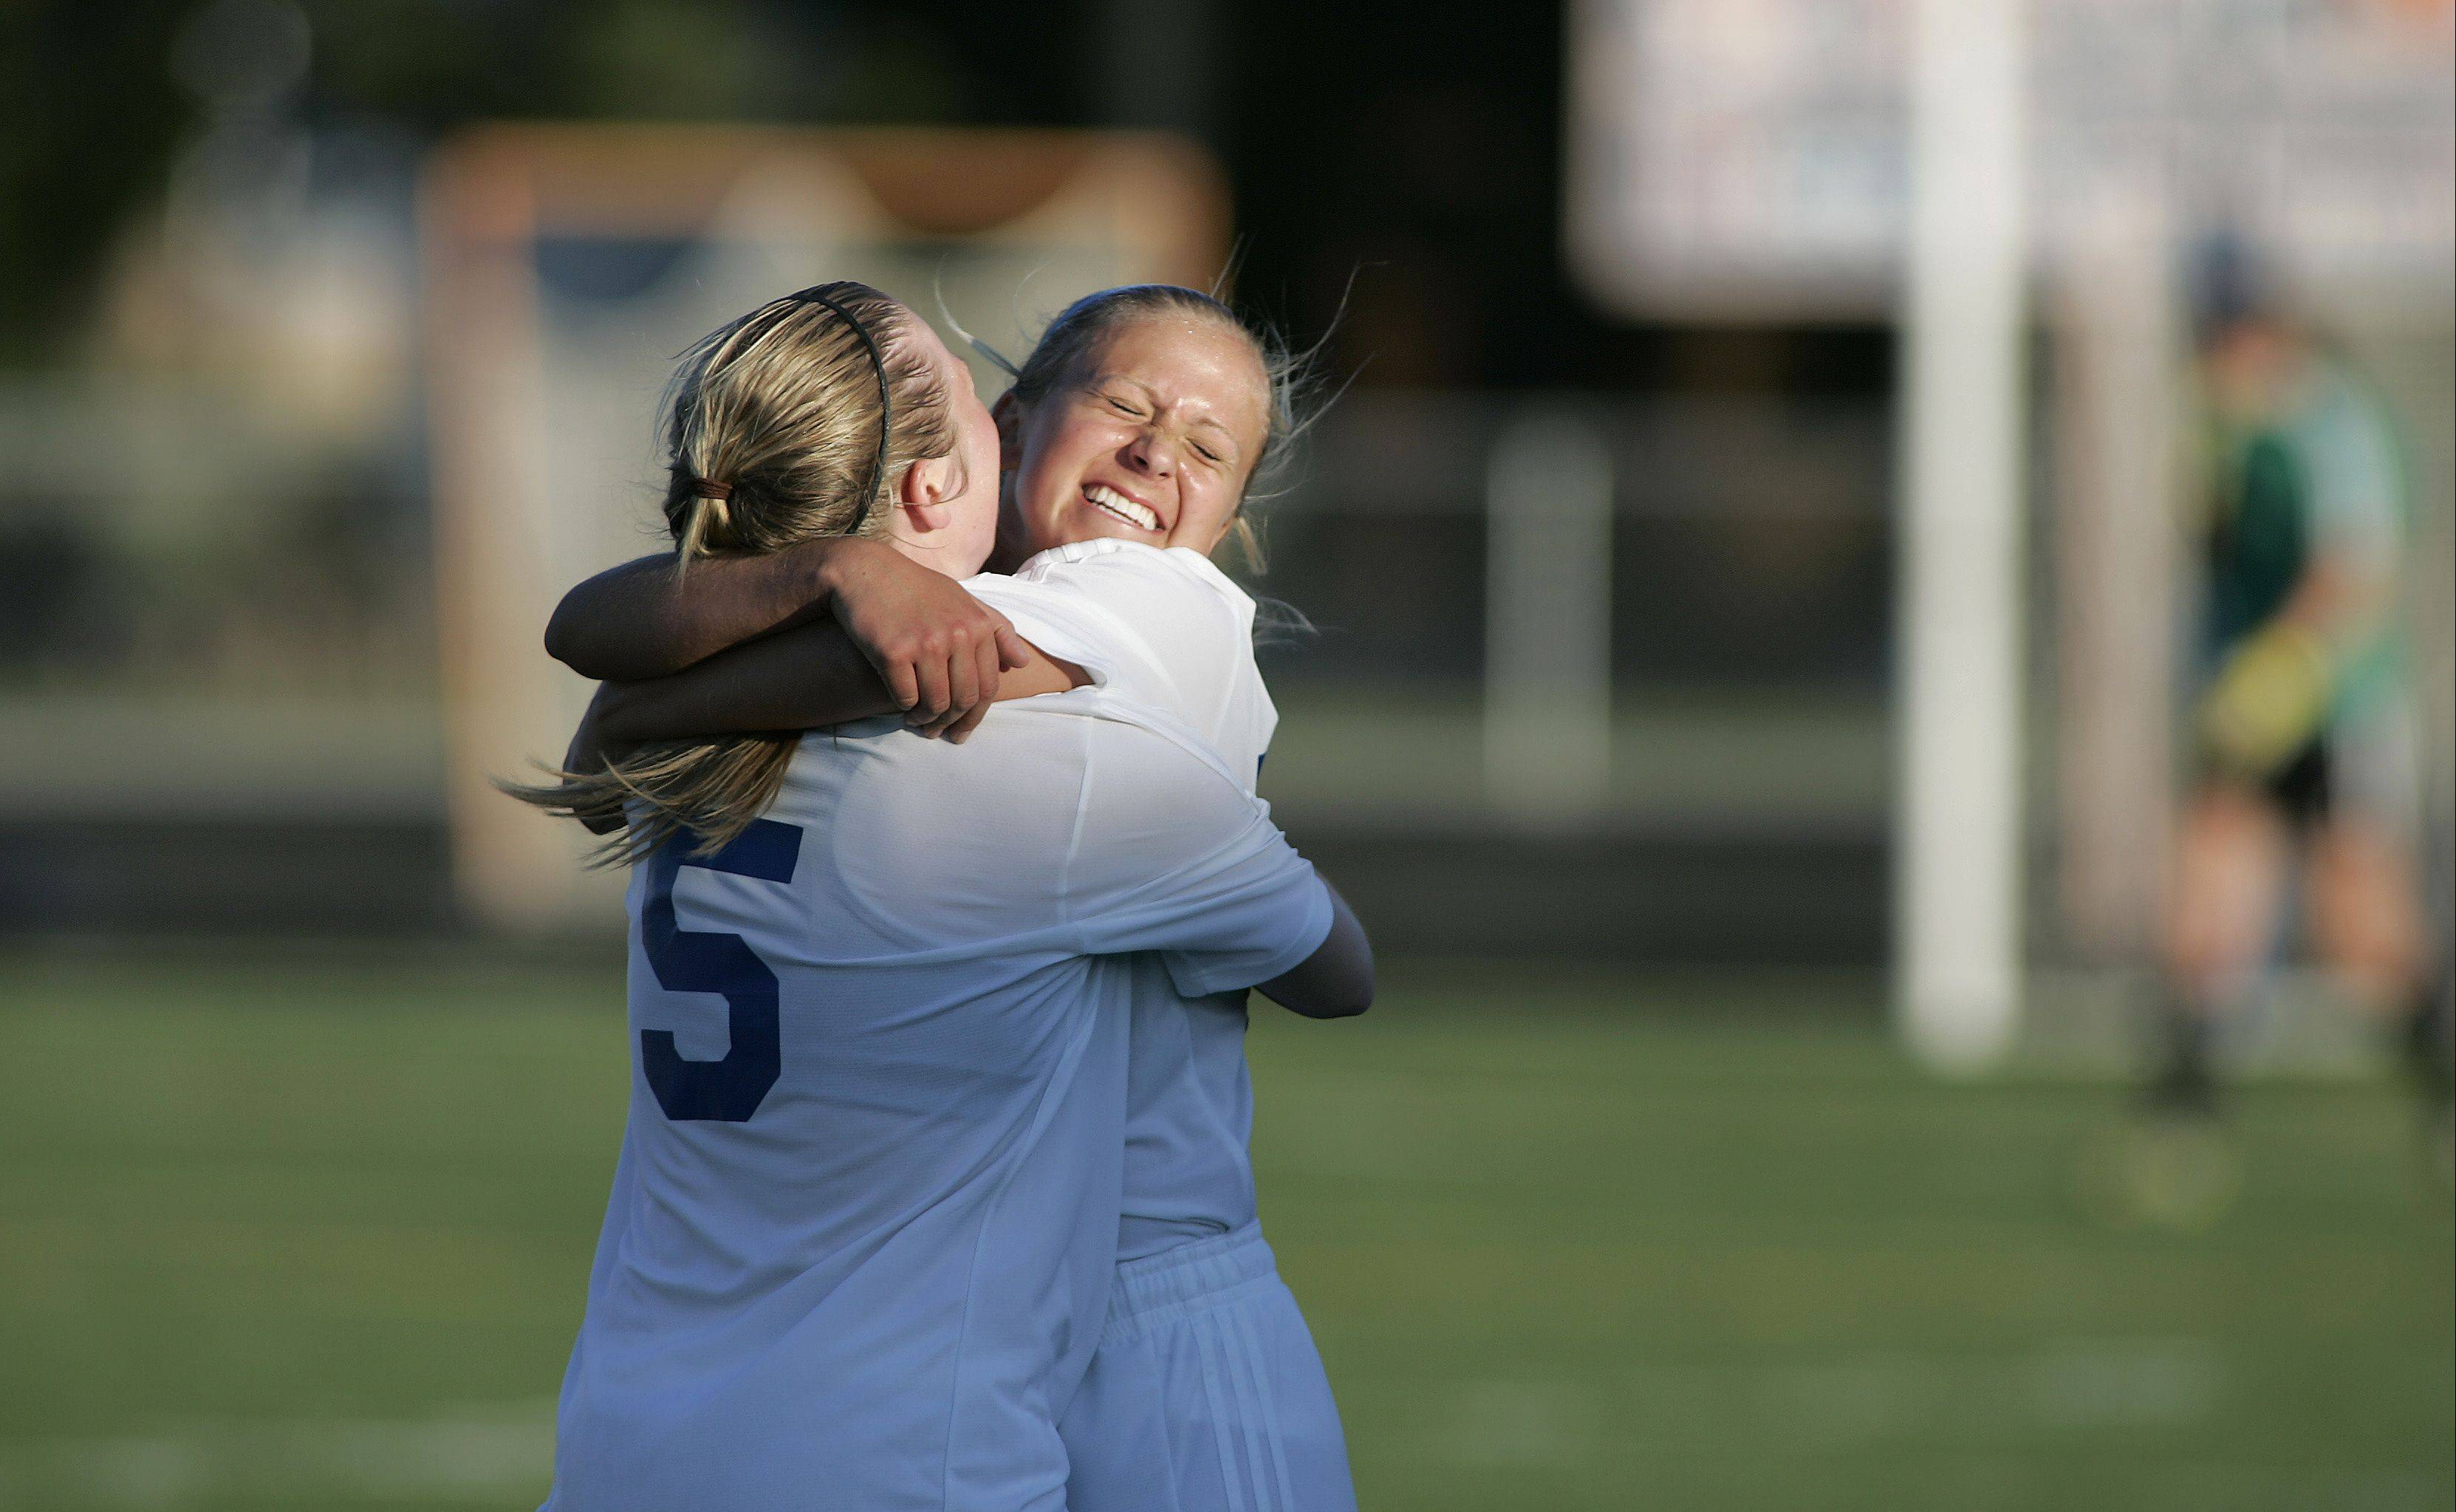 St. Charles North's Natalie Winkates (5) hugs her teammate Kelly Manski (17) after their win over Geneva Friday for the Class 3A Hoffman Estates sectional championship.